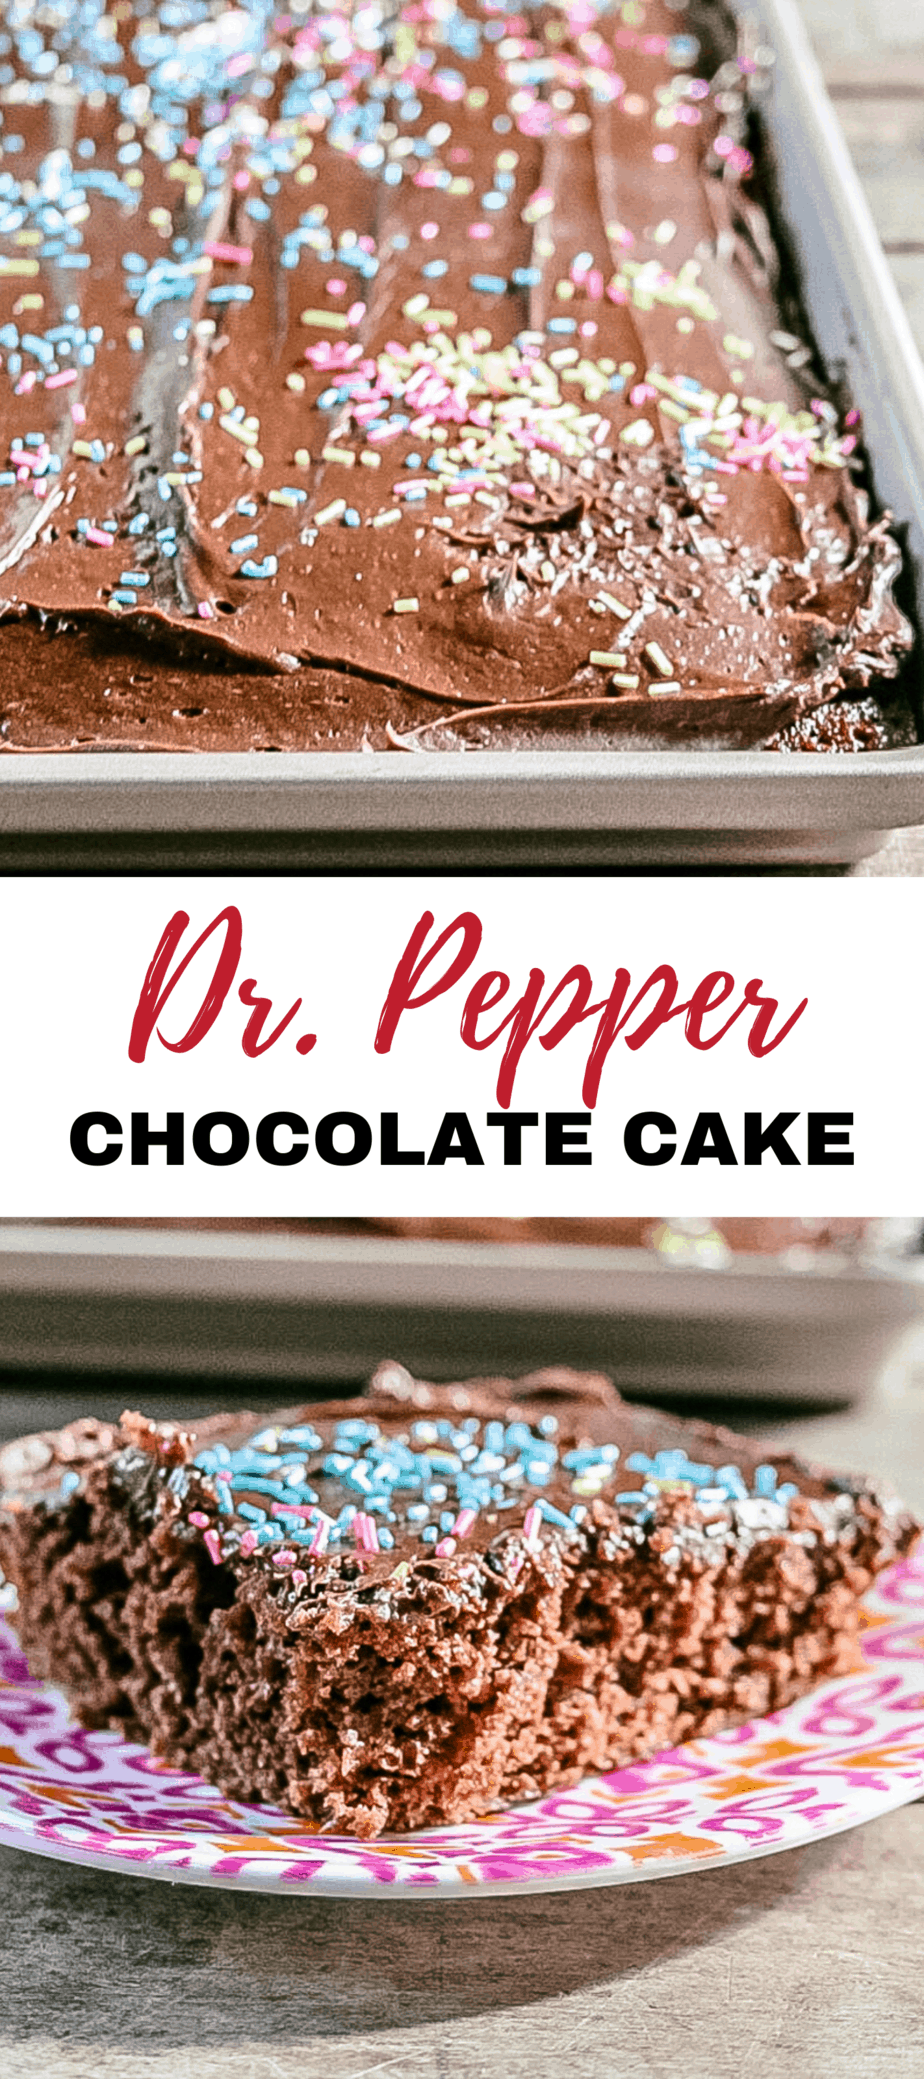 this Dr. Pepper chocolate sheet cake is amazing